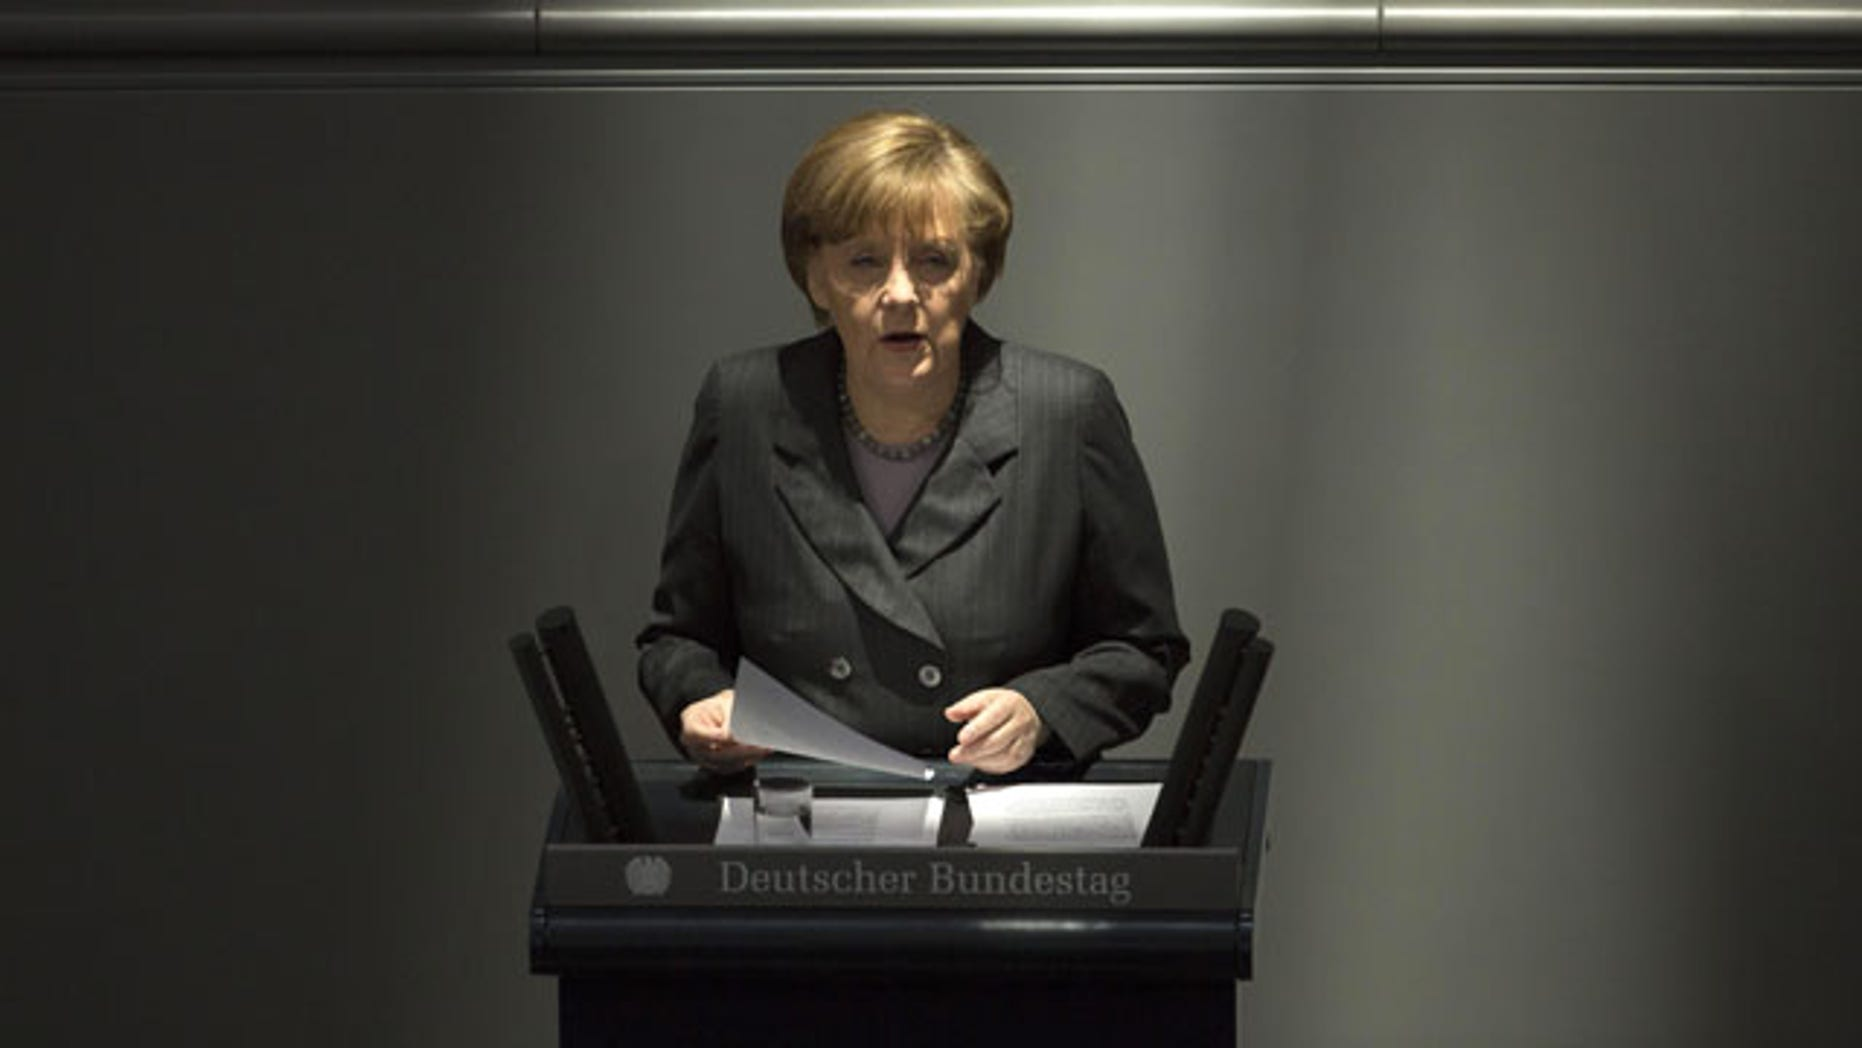 """March 13, 2014: German Chancellor Angela Merkel delivers a speech on the Ukrainian crisis at the parliament Bundestag in Berlin, in which she warned Moscow that if it continues its current course in the Ukraine crisis, Russia risks """"massive"""" political and economic consequences. (AP Photo/Markus Schreiber)"""